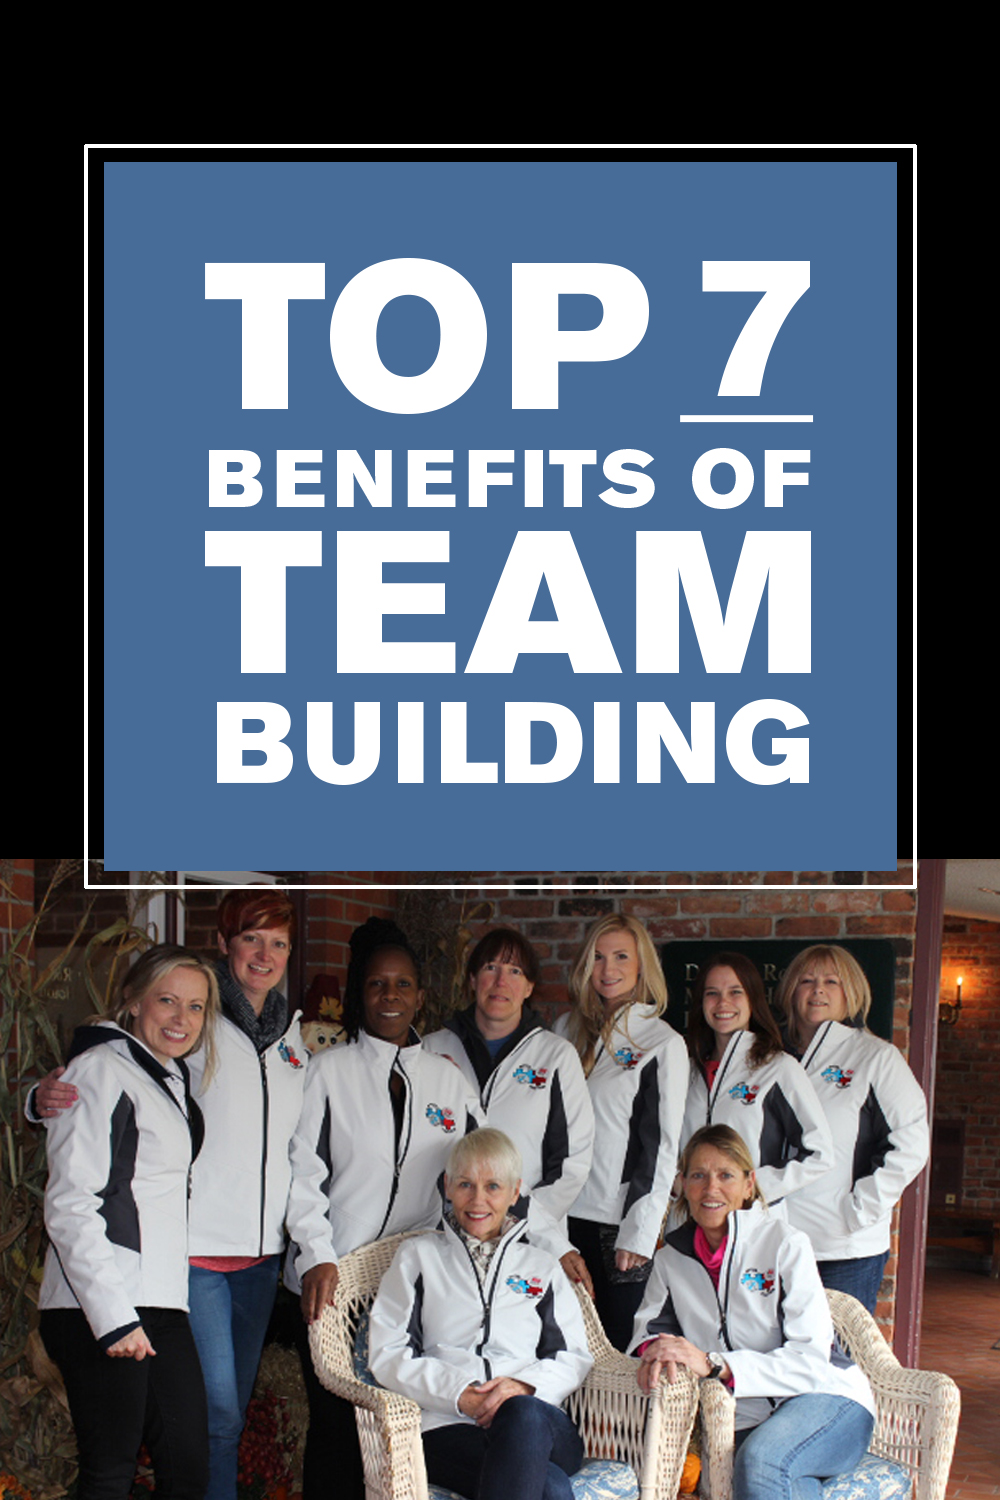 Top 7 Benefits of Team Building